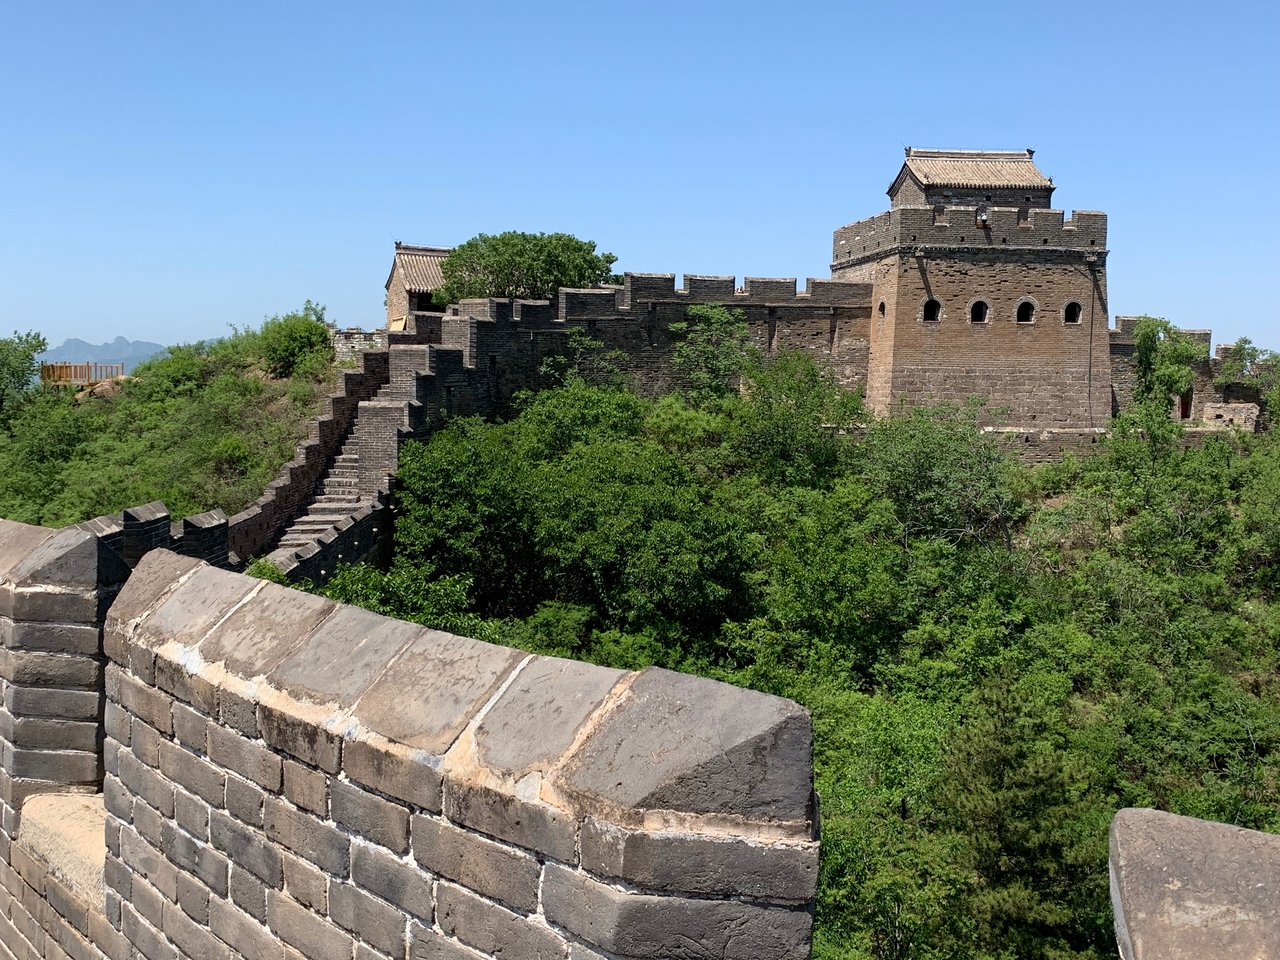 The Great Wall | Photo taken by Shiru H